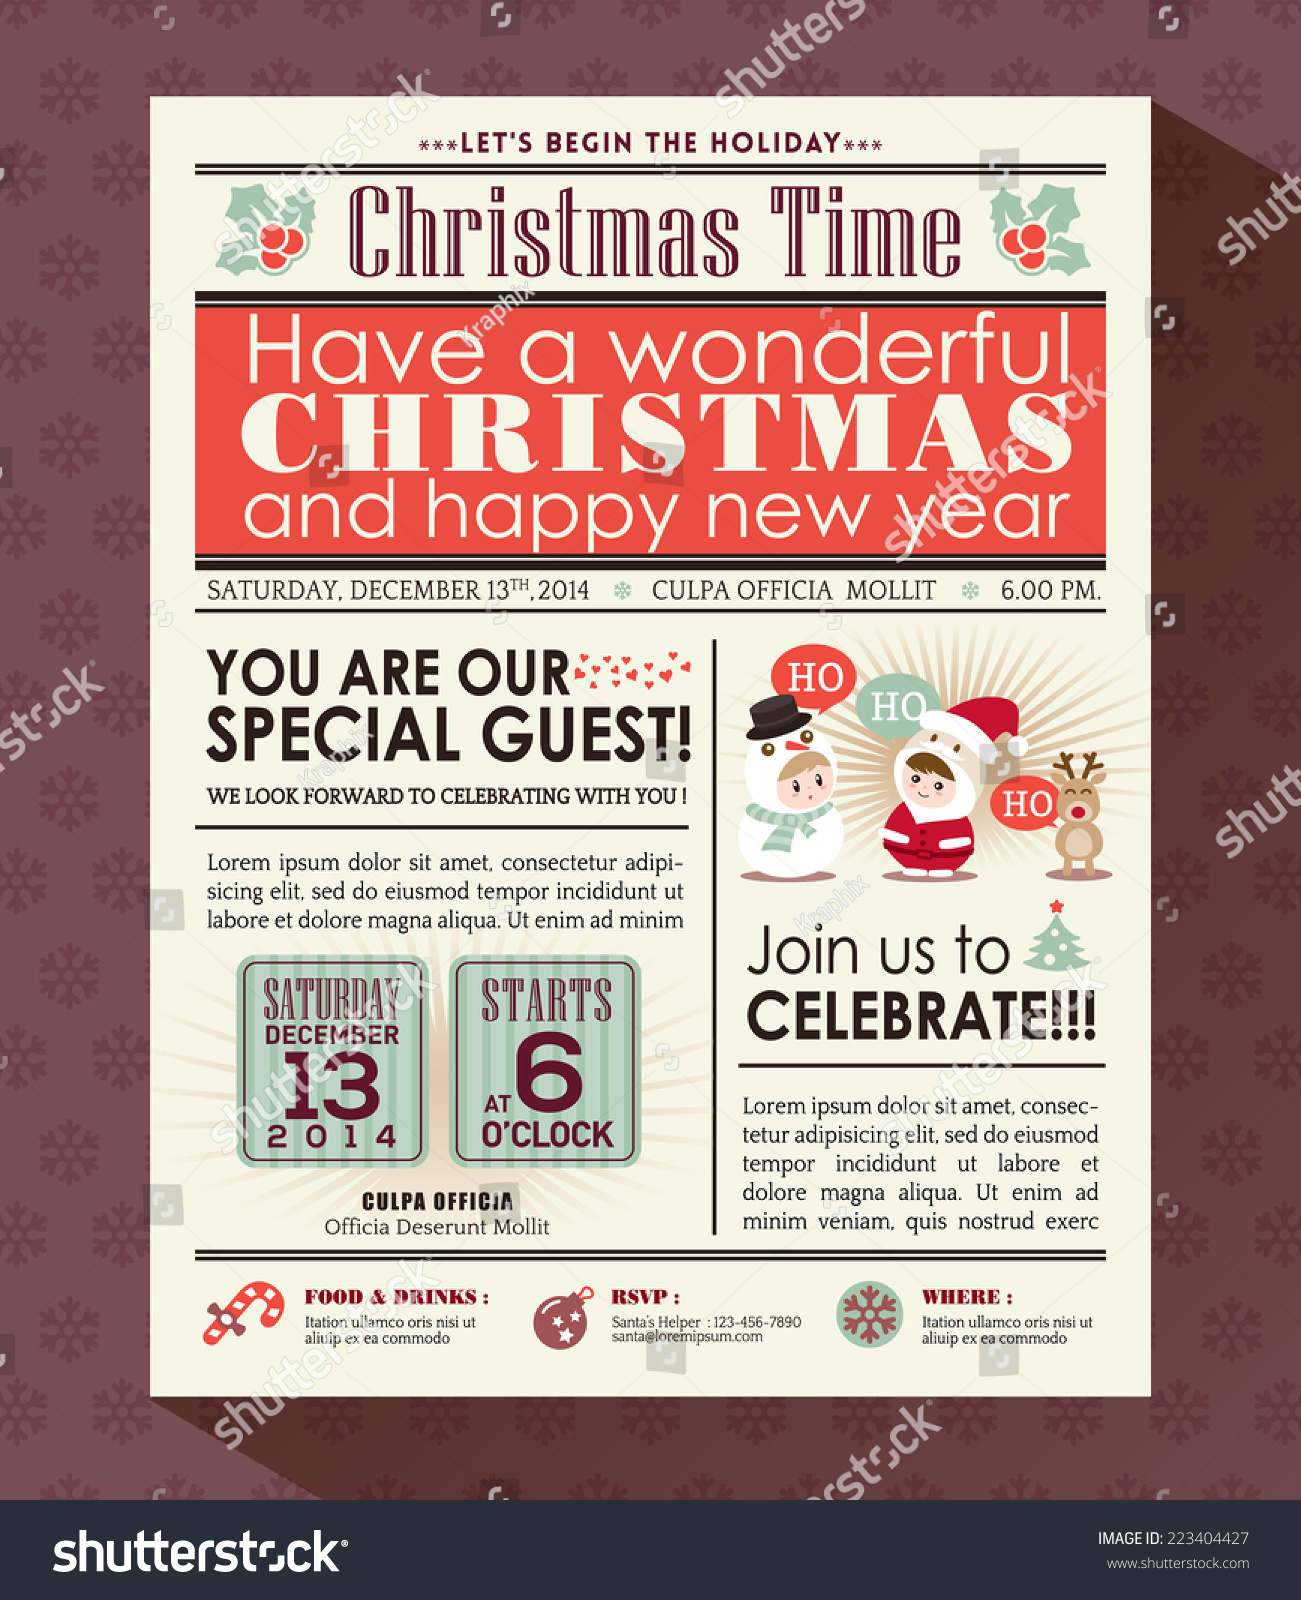 christmas party poster invite background newspaper stock vector christmas party poster invite background in newspaper style